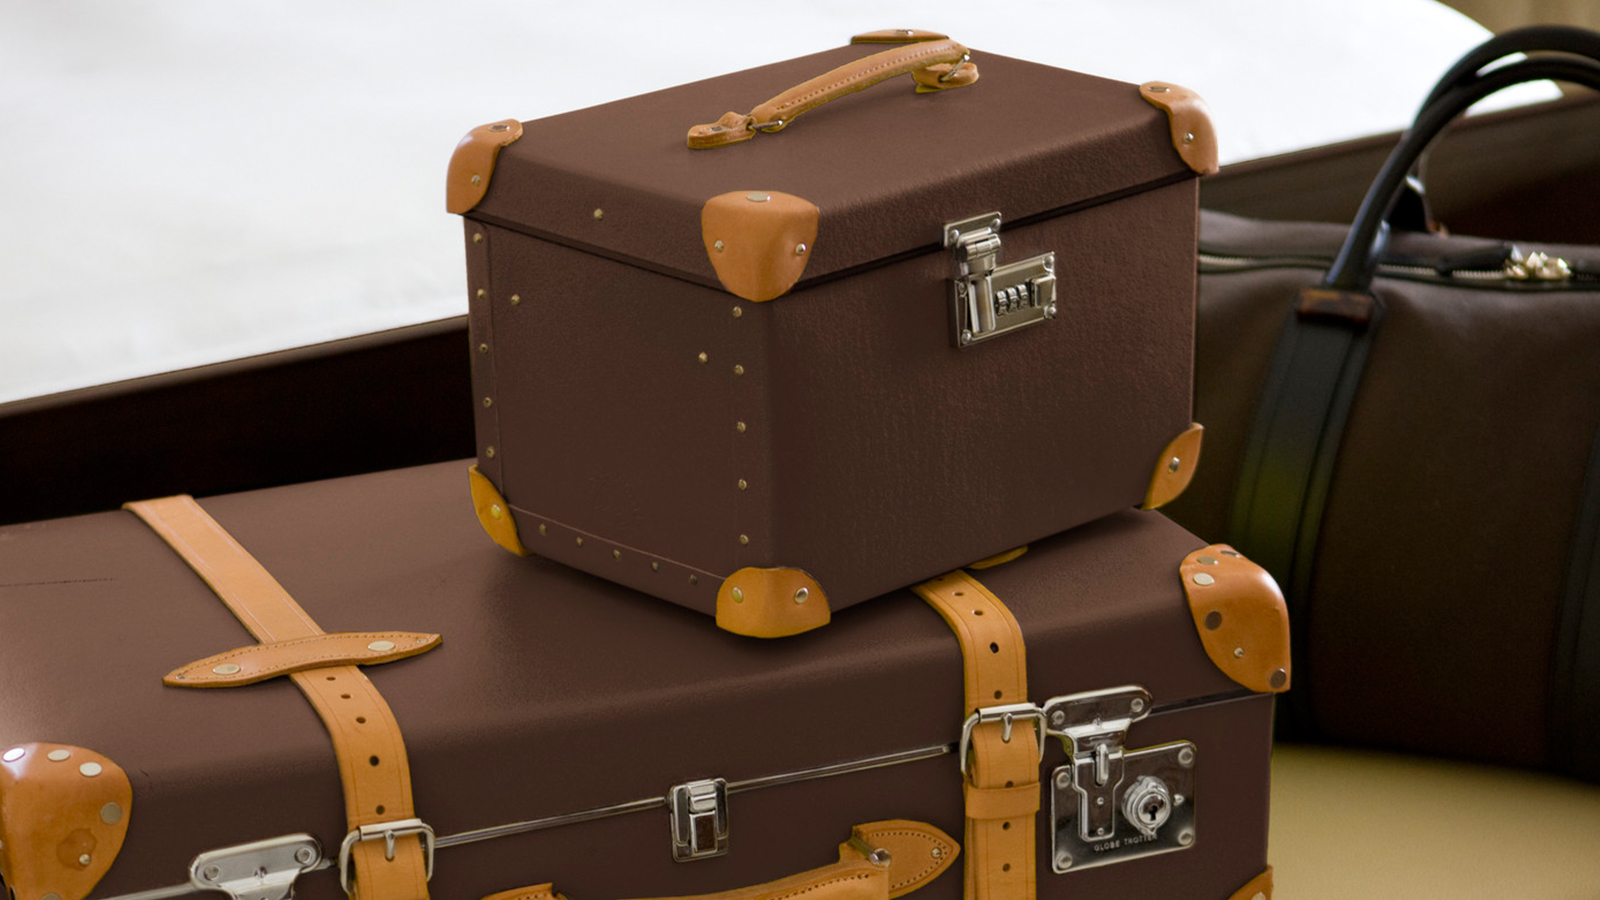 Butler Packing Service Suitcases